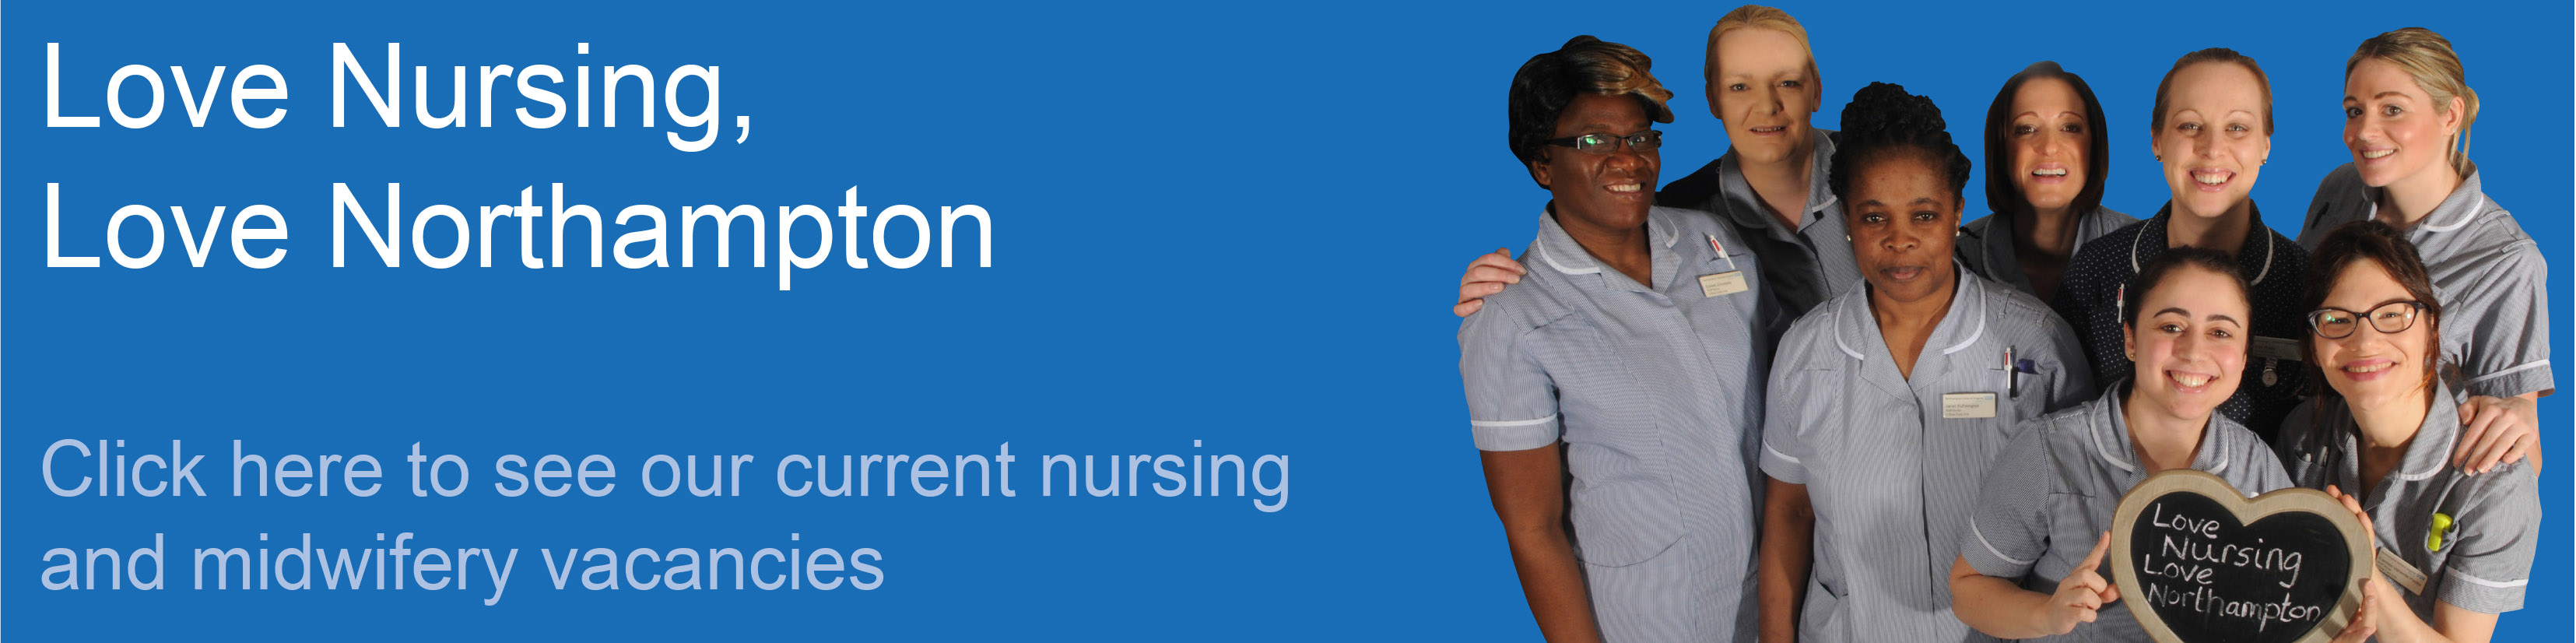 Love nursing, love northampton. Click here to see our current nursing and midwifery vacancies